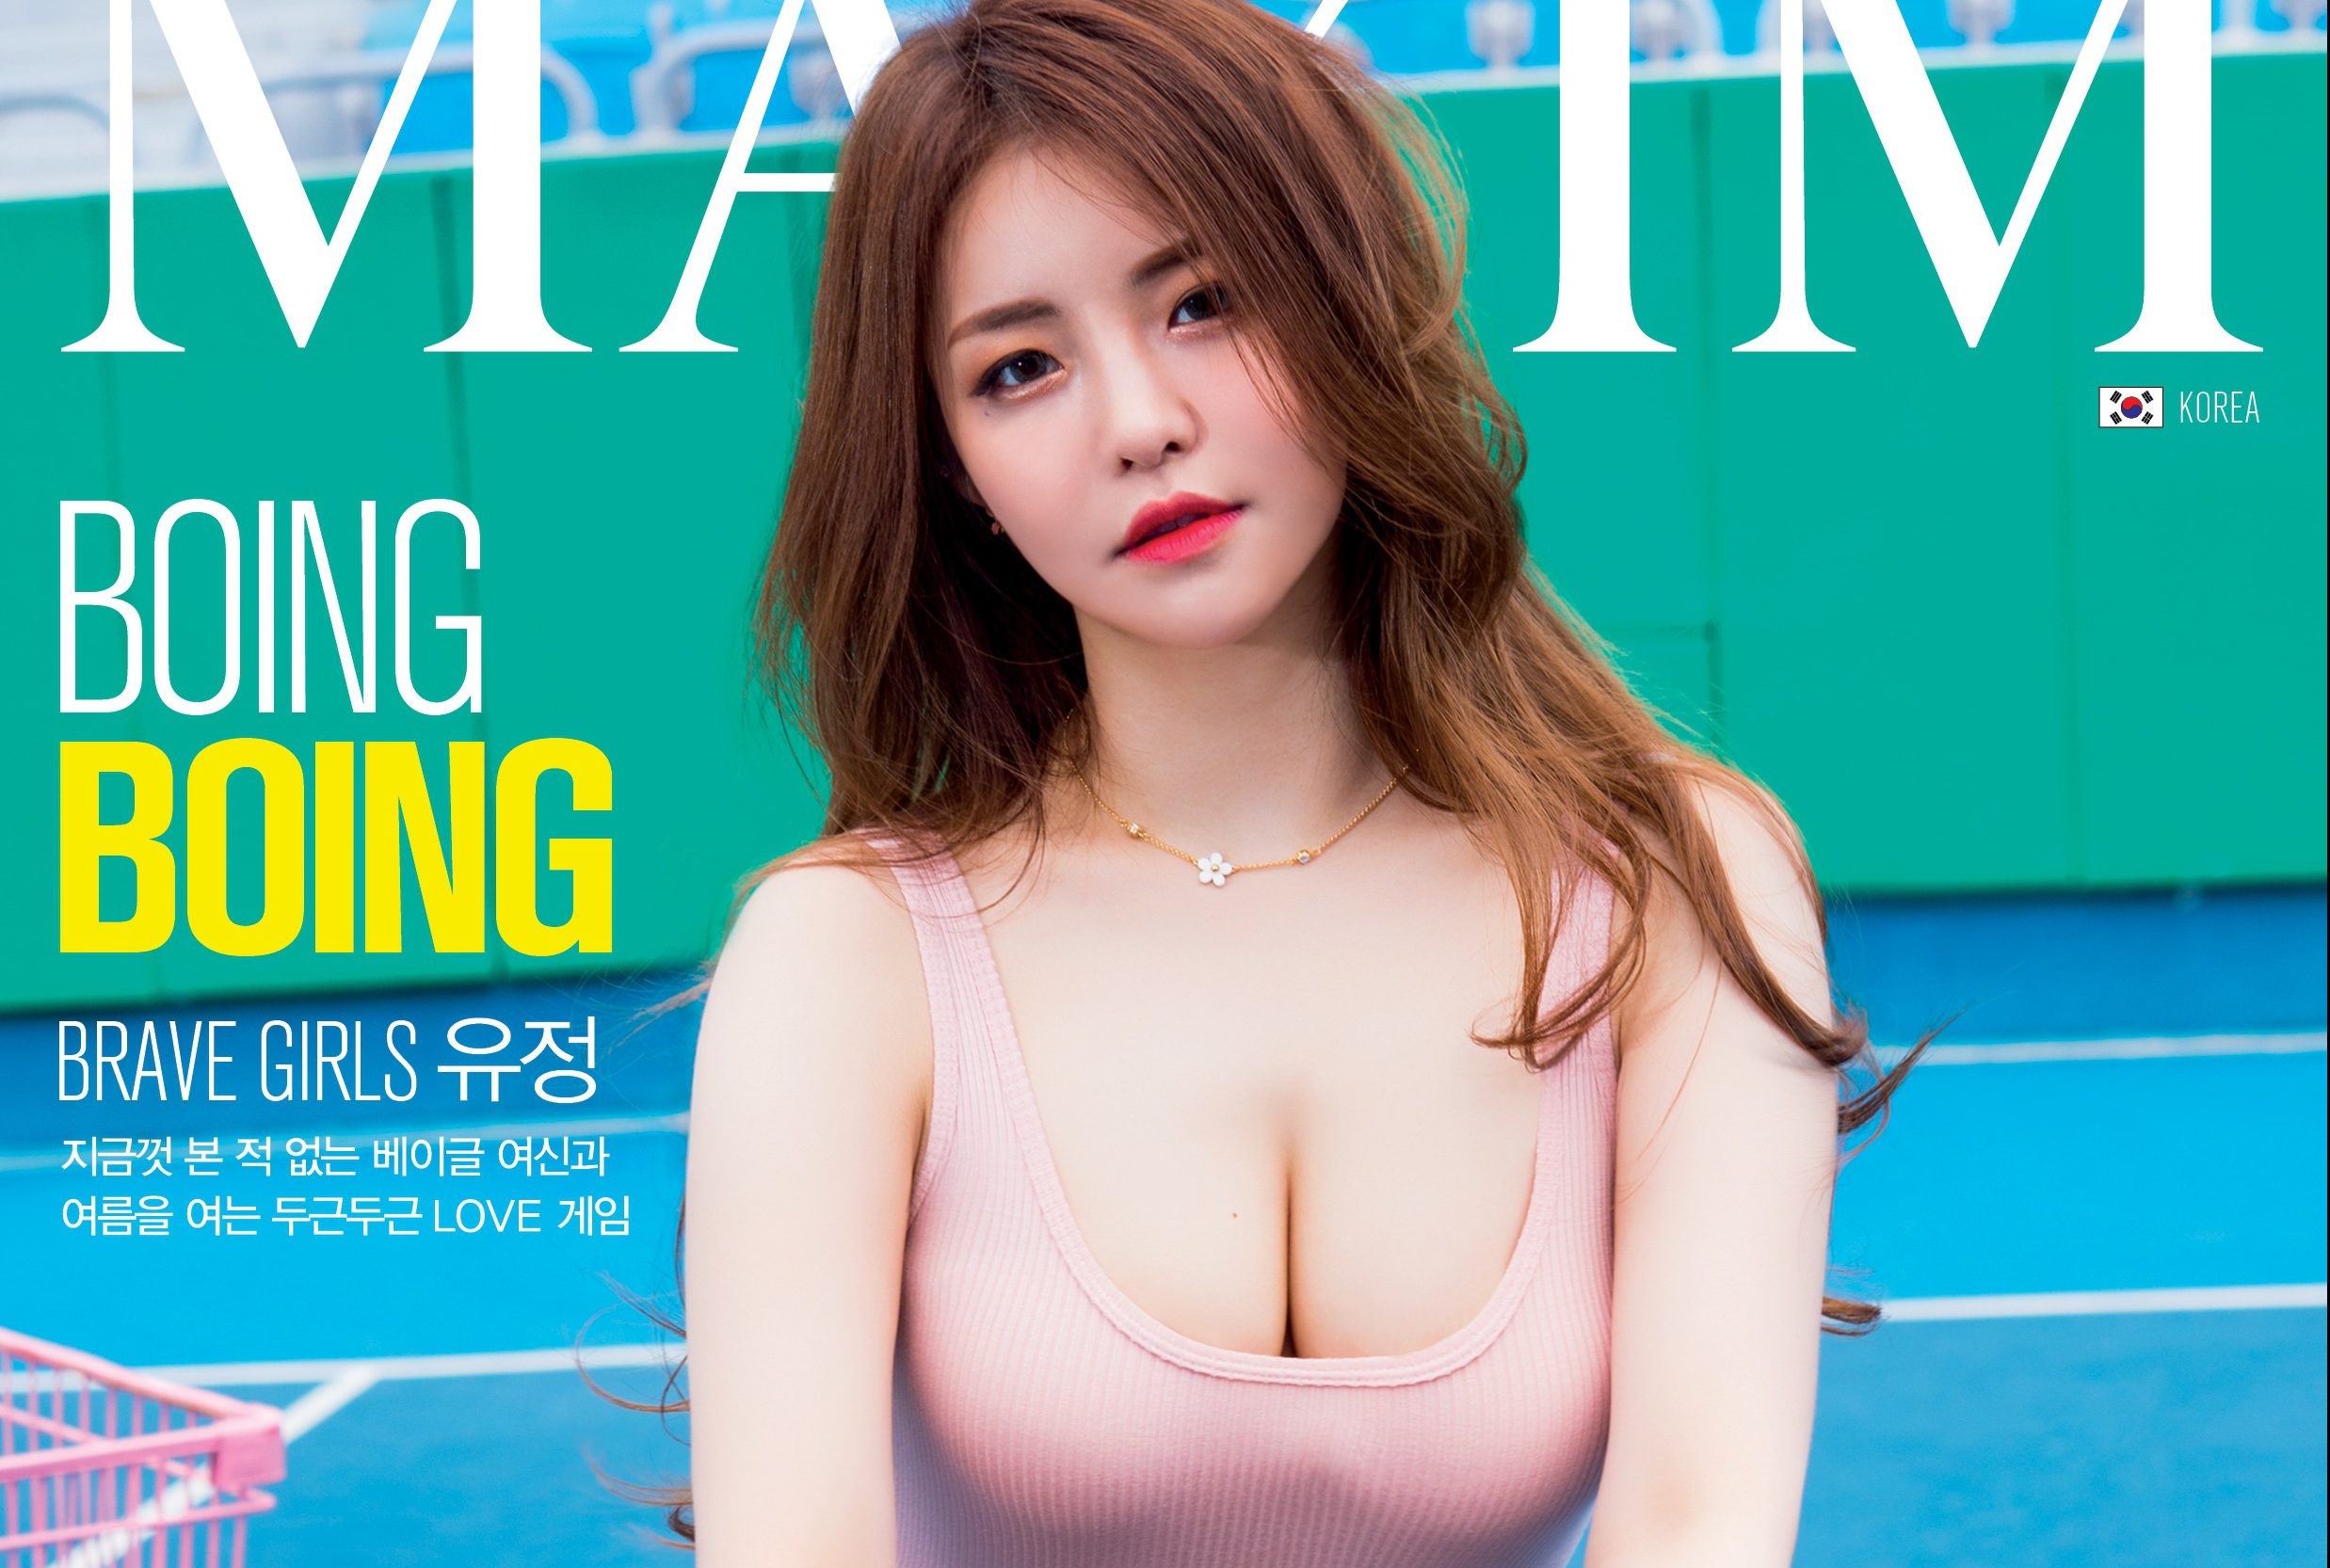 Brave Girls Yoojung shows off her body in this tight swimsuit